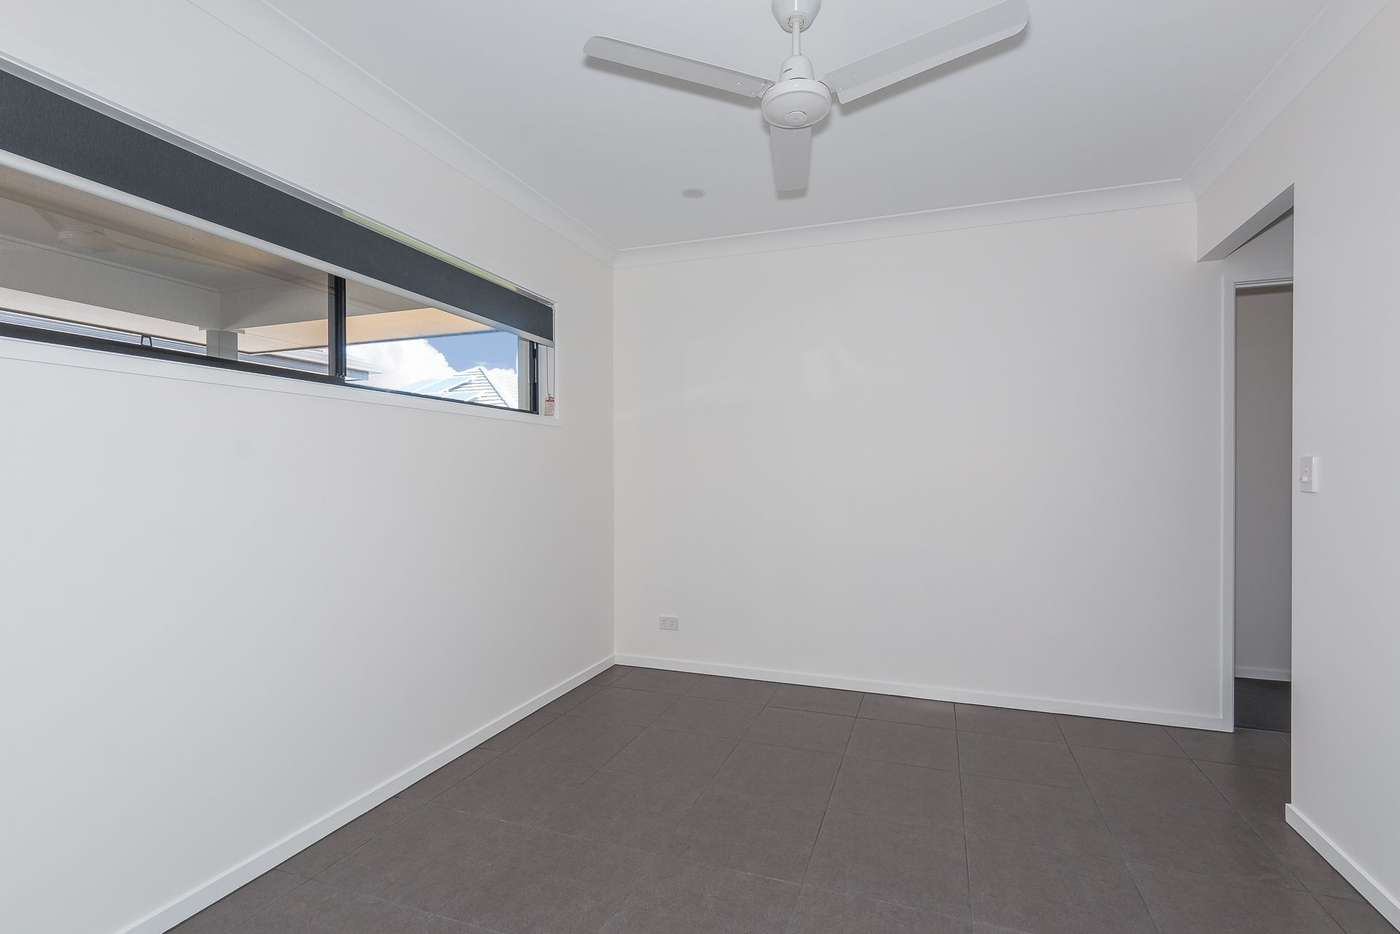 Seventh view of Homely house listing, 33 Buccaneer Street, Newport QLD 4020